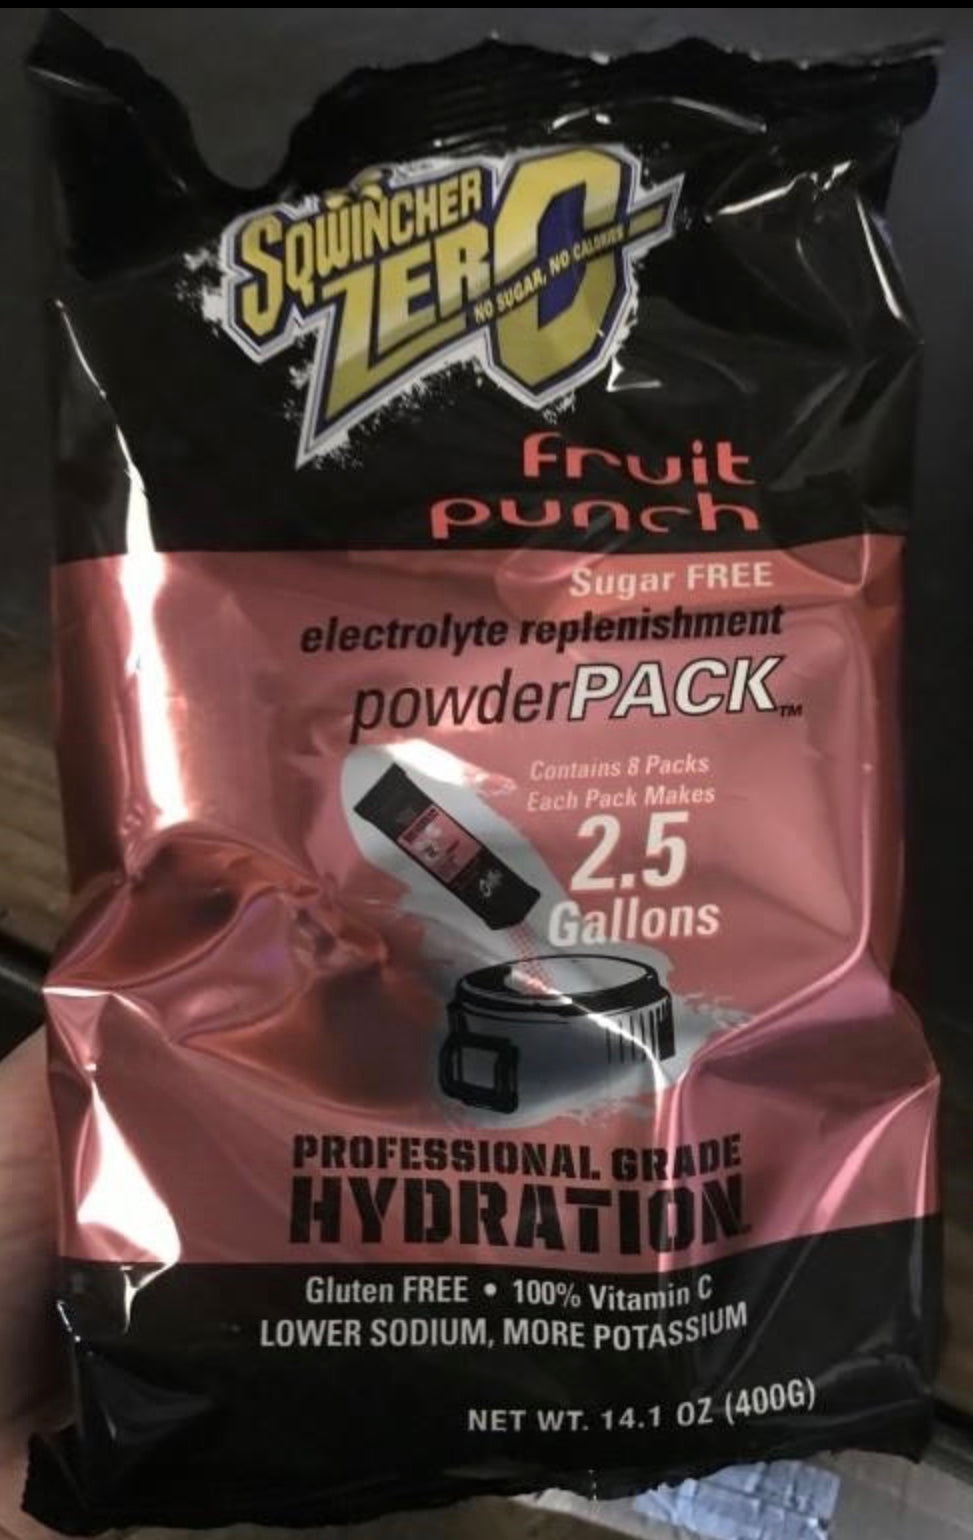 BOX OF (4) 8-PACK SQWINCHER ZERO FRUIT PUNCH ELECTROLYTE REPLINISHMENT POWDER PKS 2.5 GALLONS EACH (TOTAL 32 PACKETS)